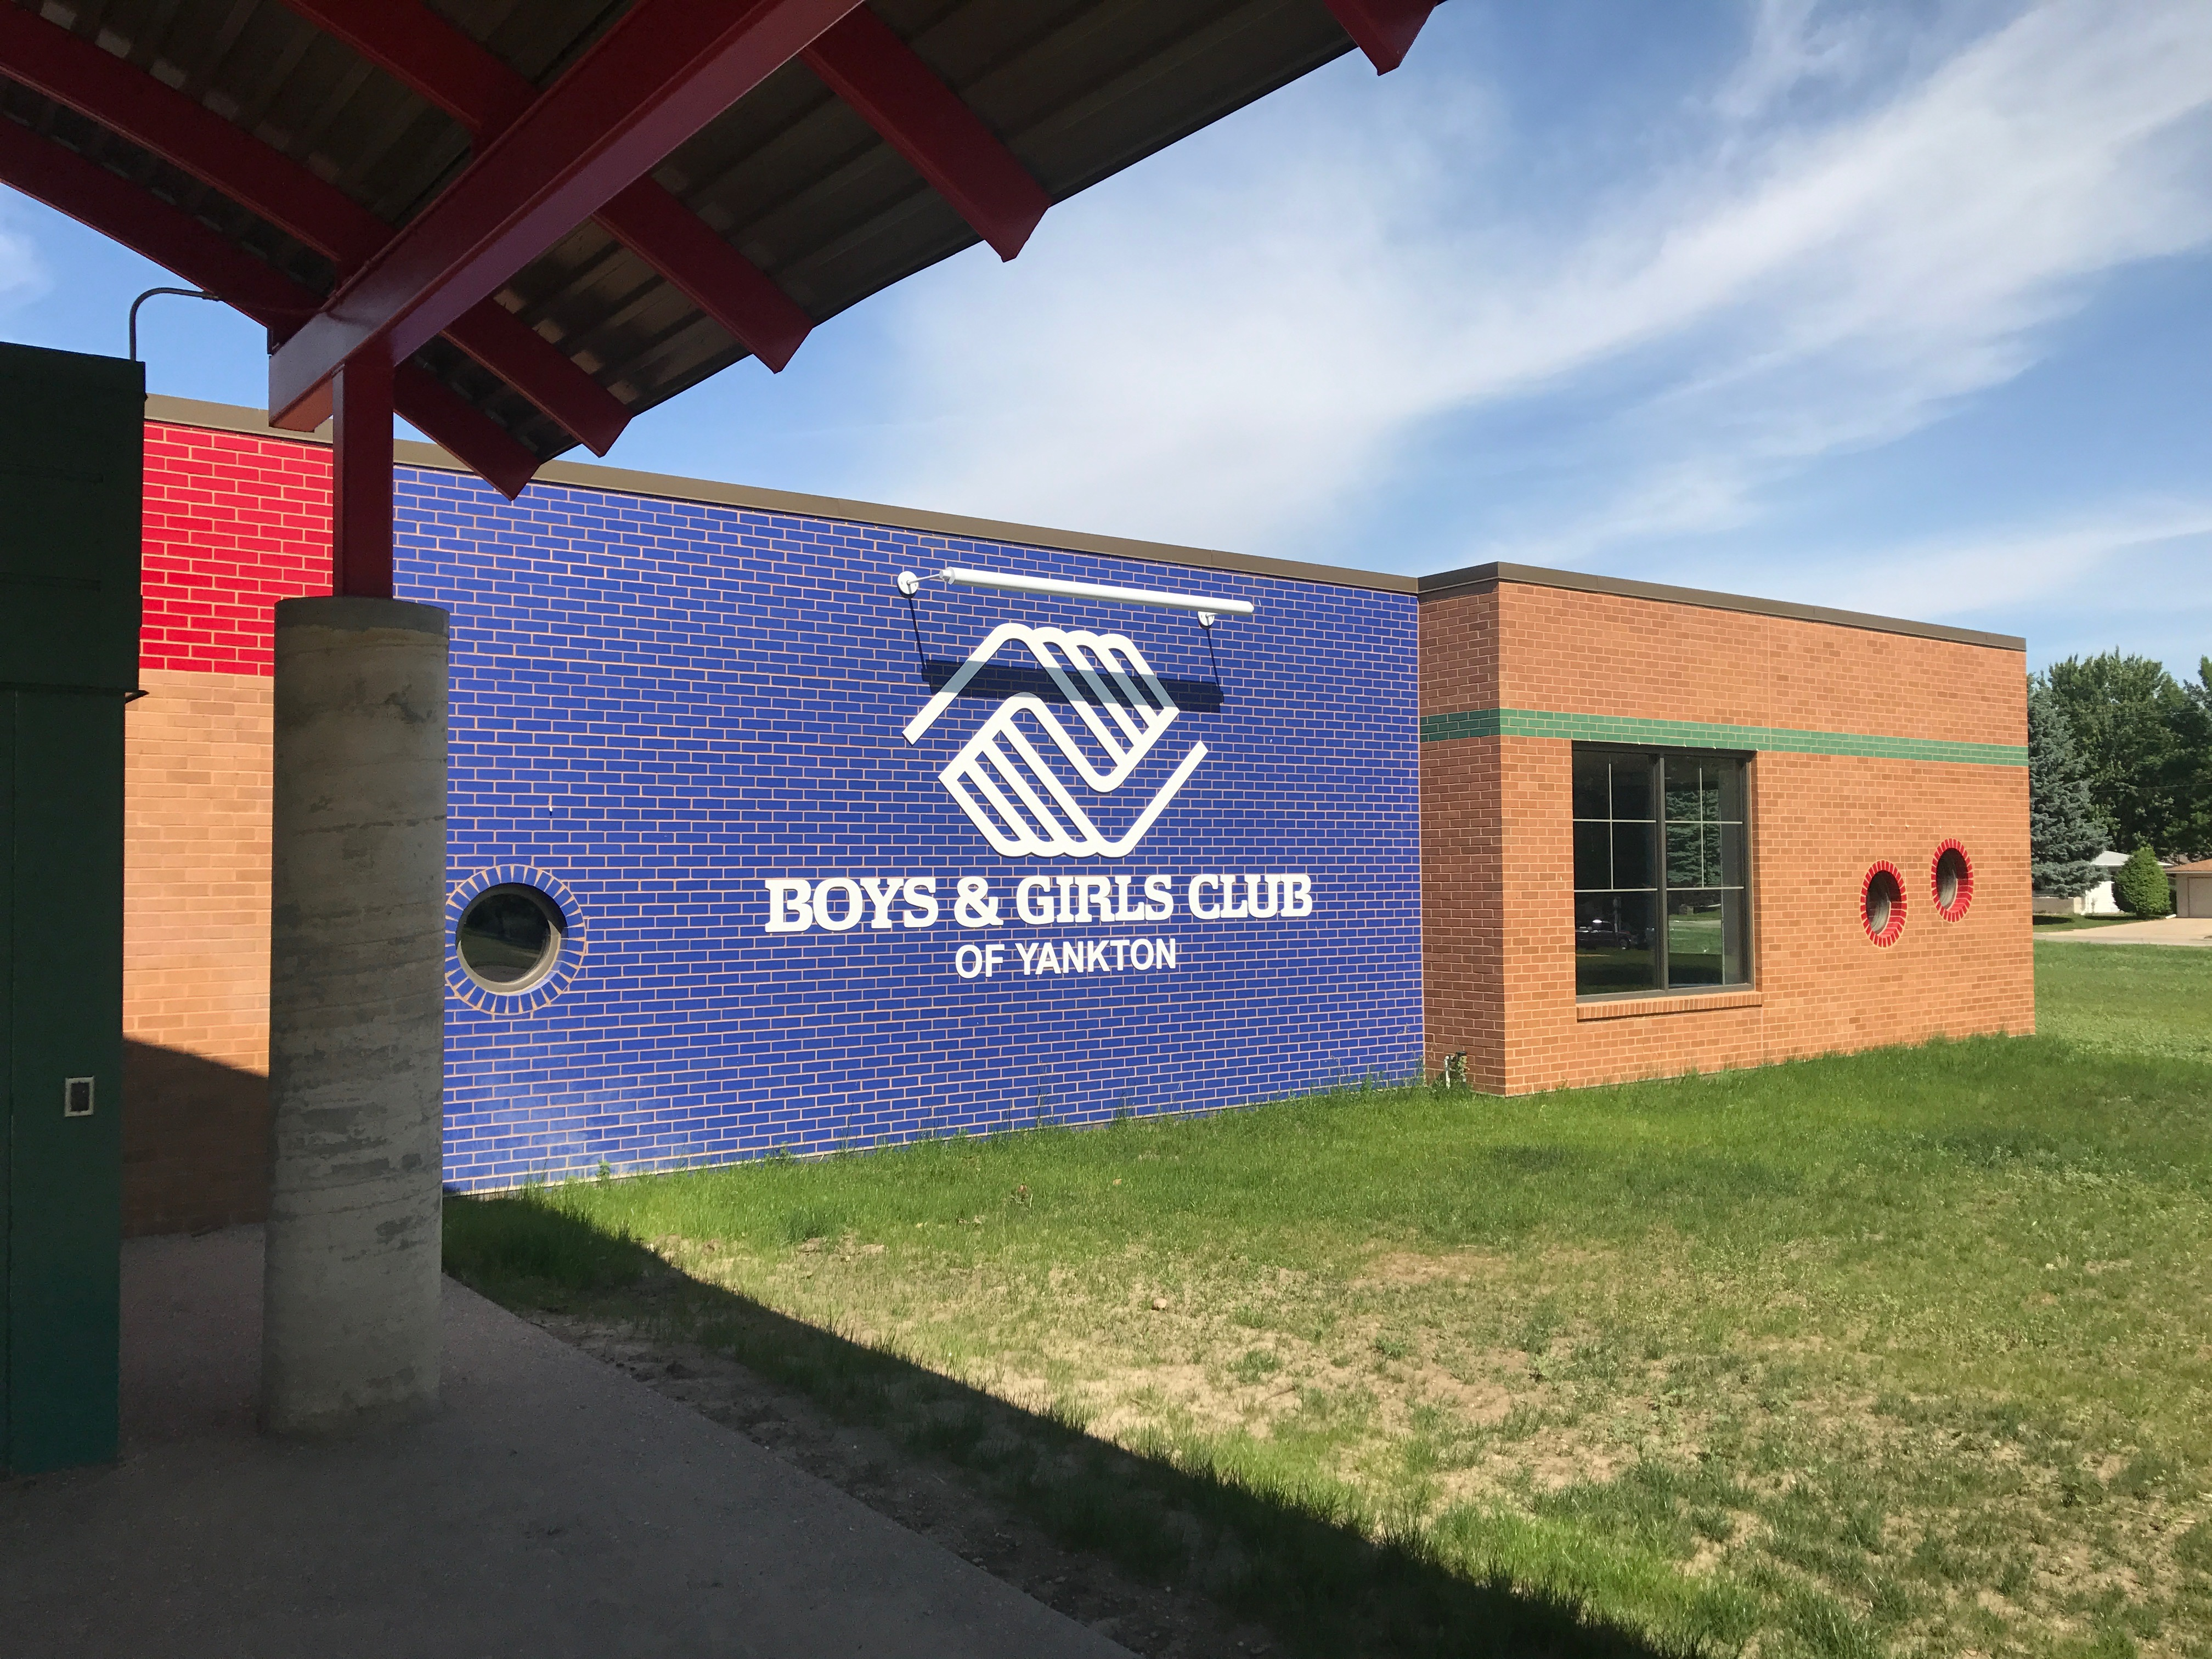 Boys & Girls Club of Yankton